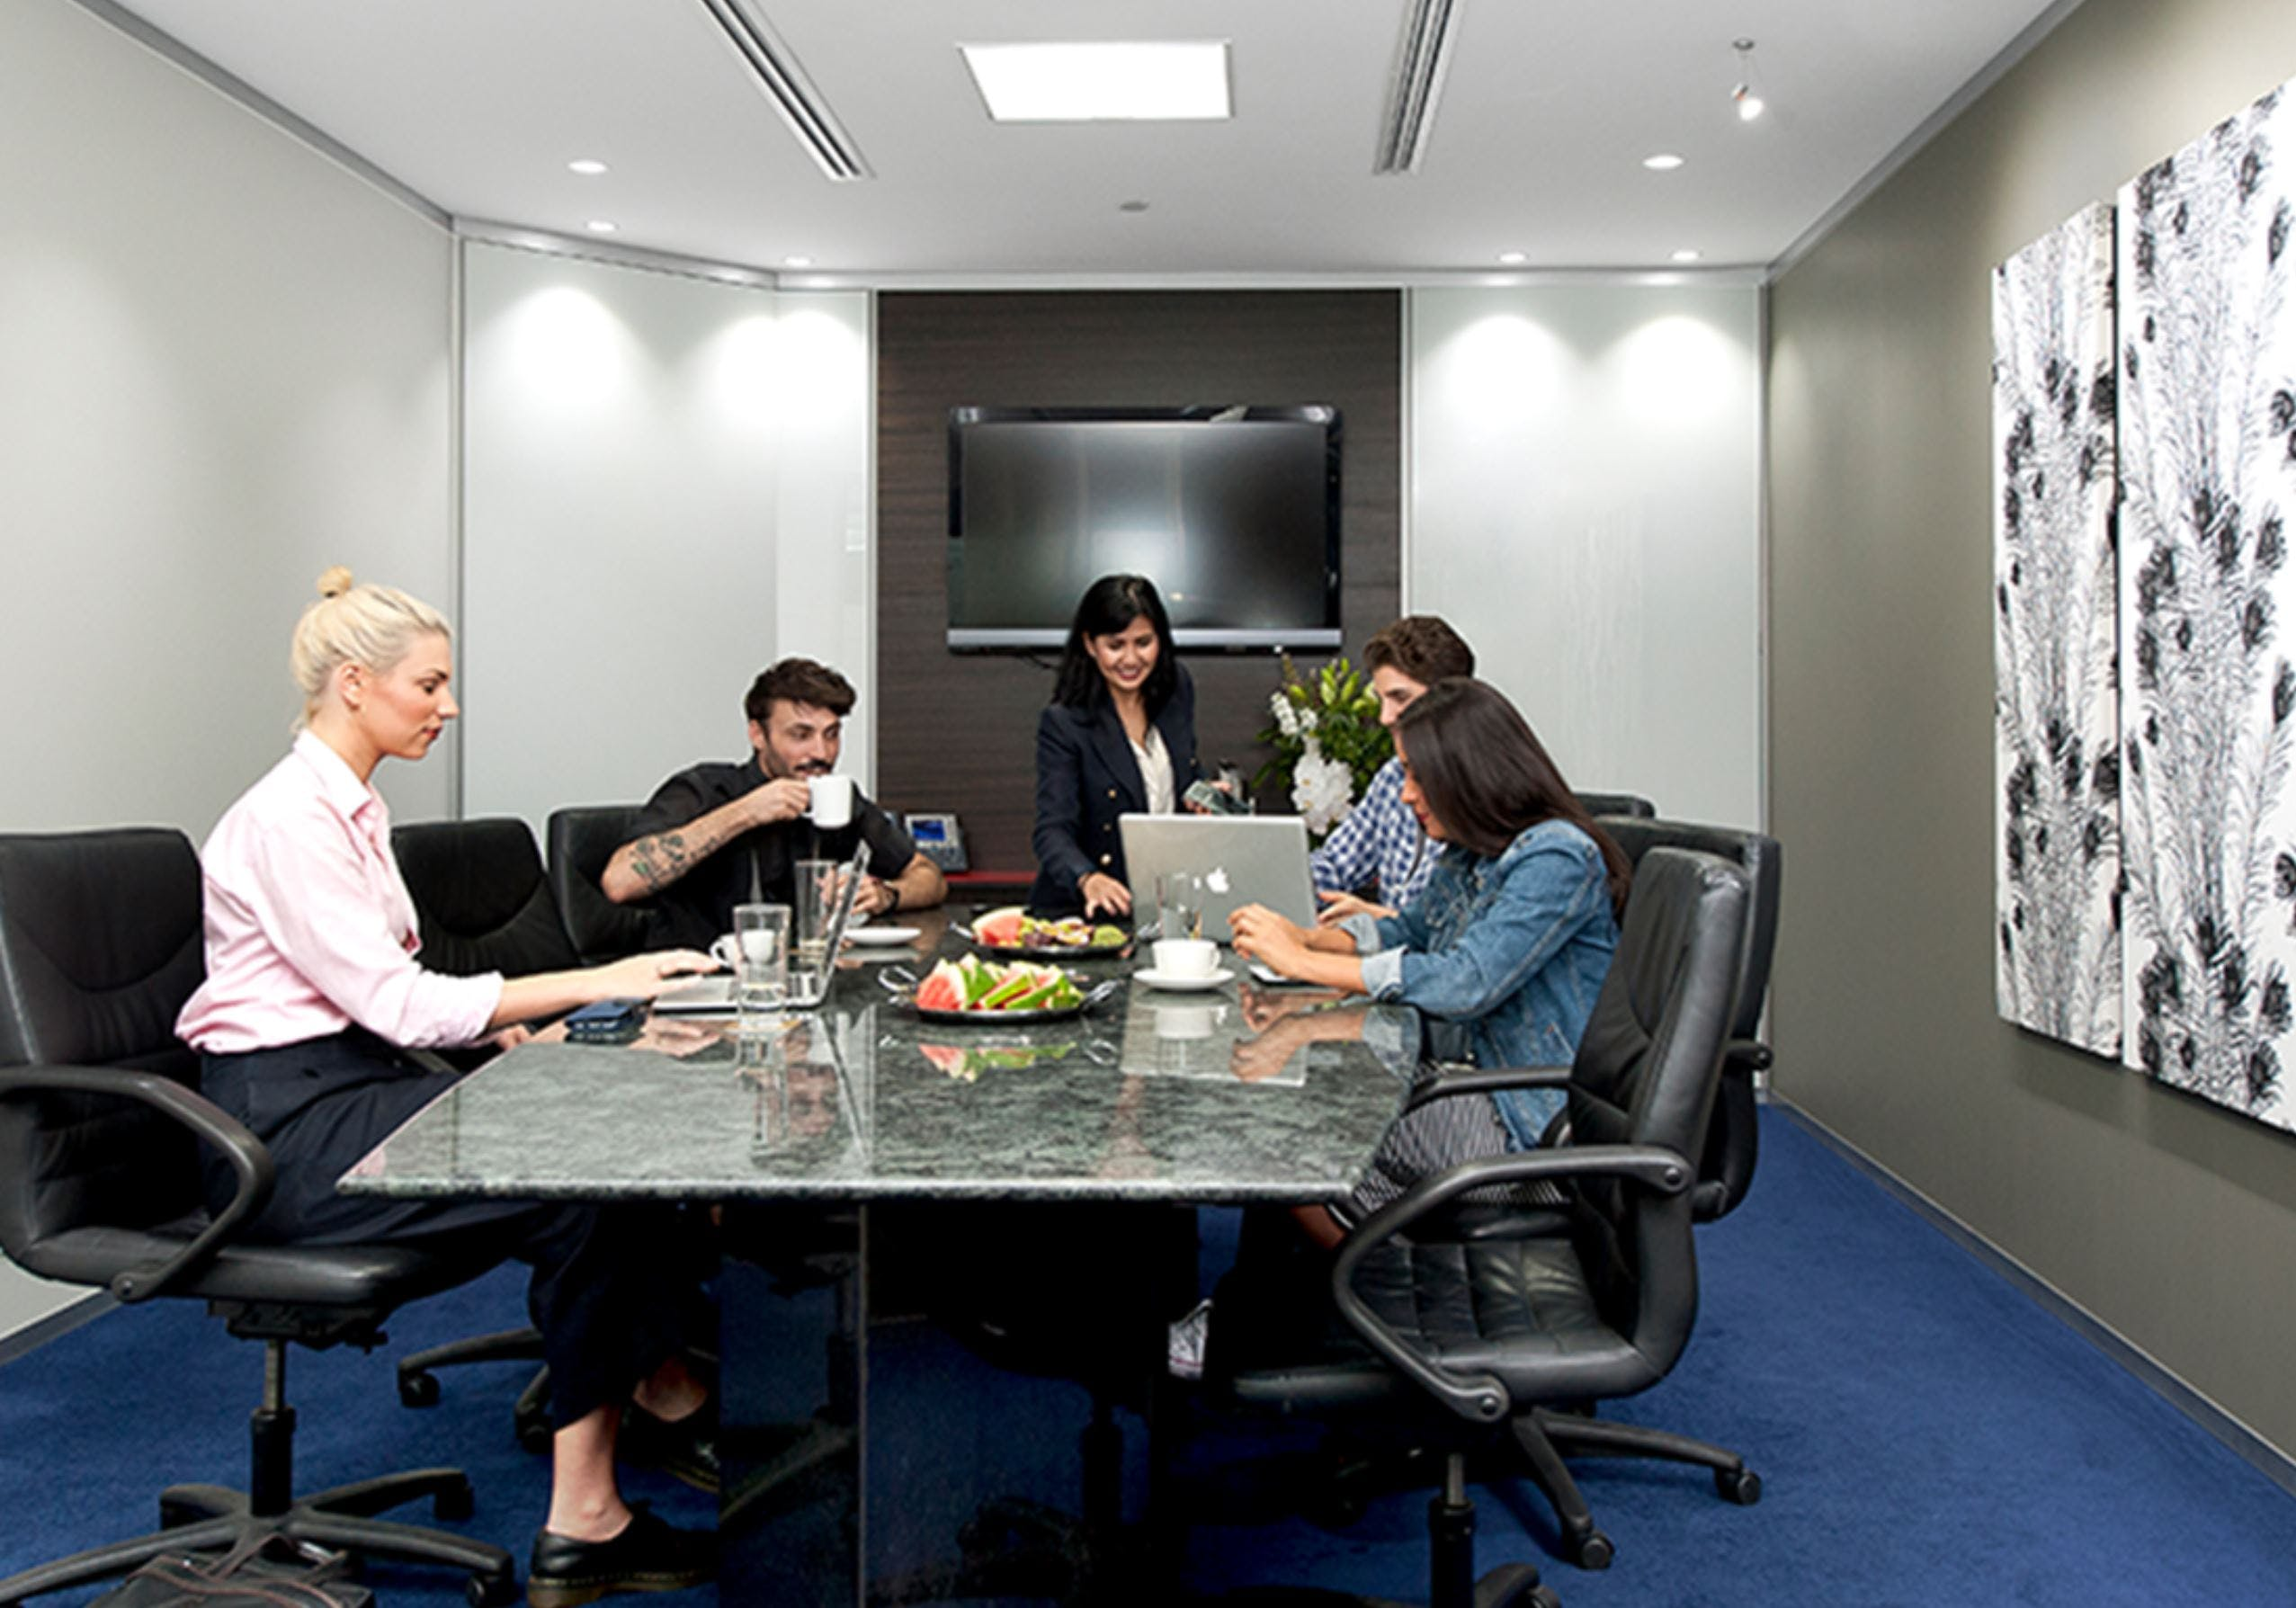 Premium Boardroom, meeting room at Octagon Building, image 1